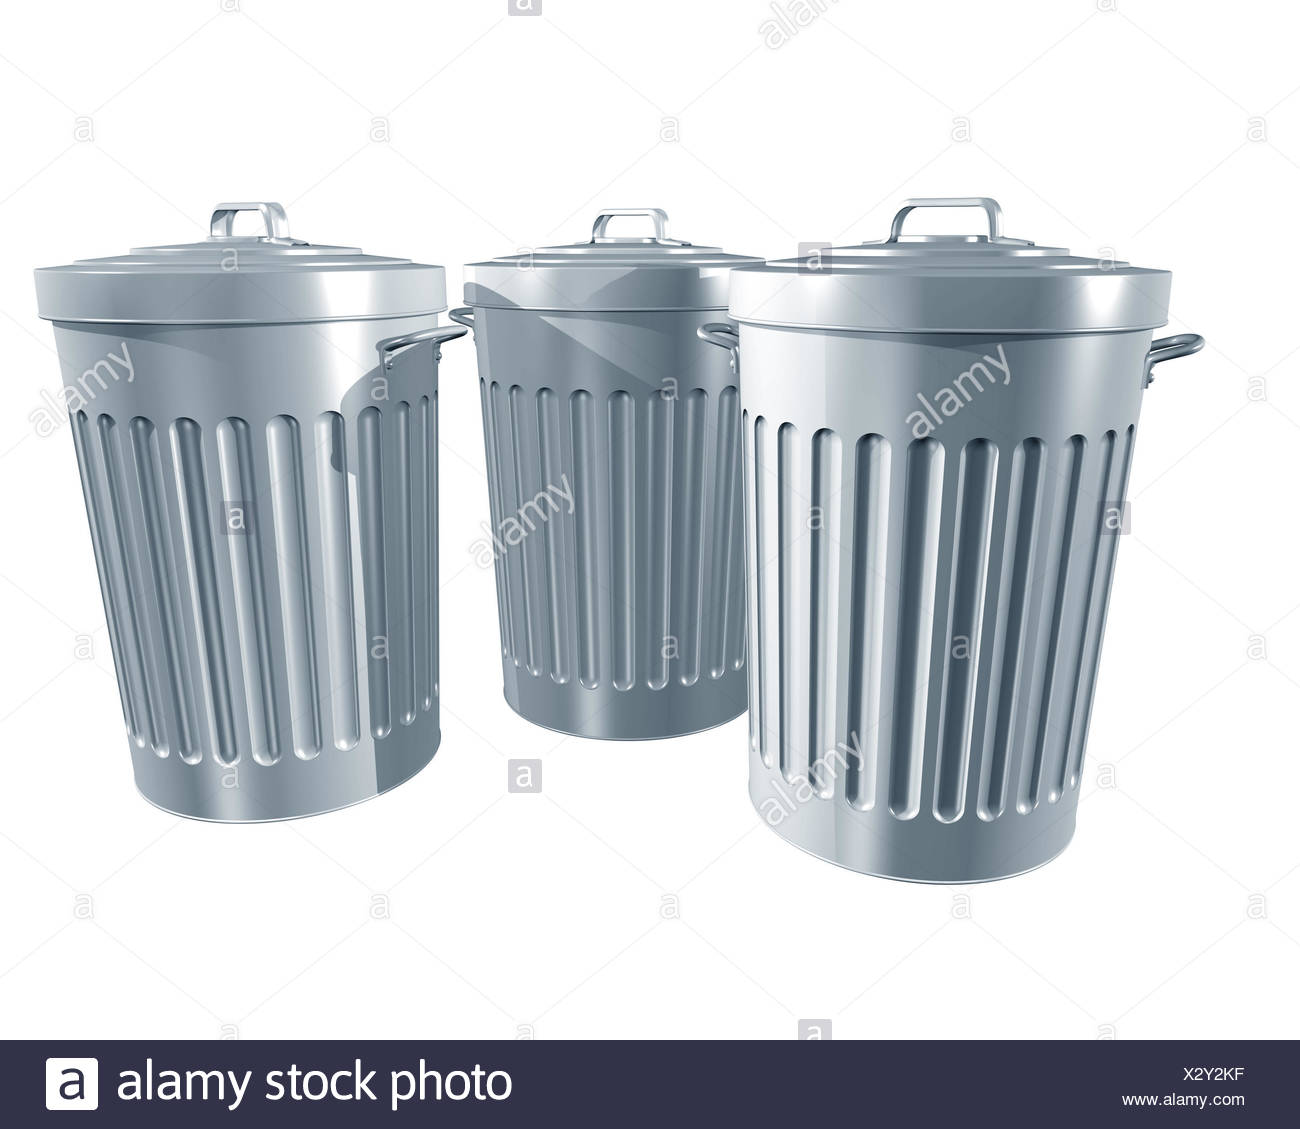 steel metal traditional trash galvanized bin rubbish sweepings can isolated - Stock Image